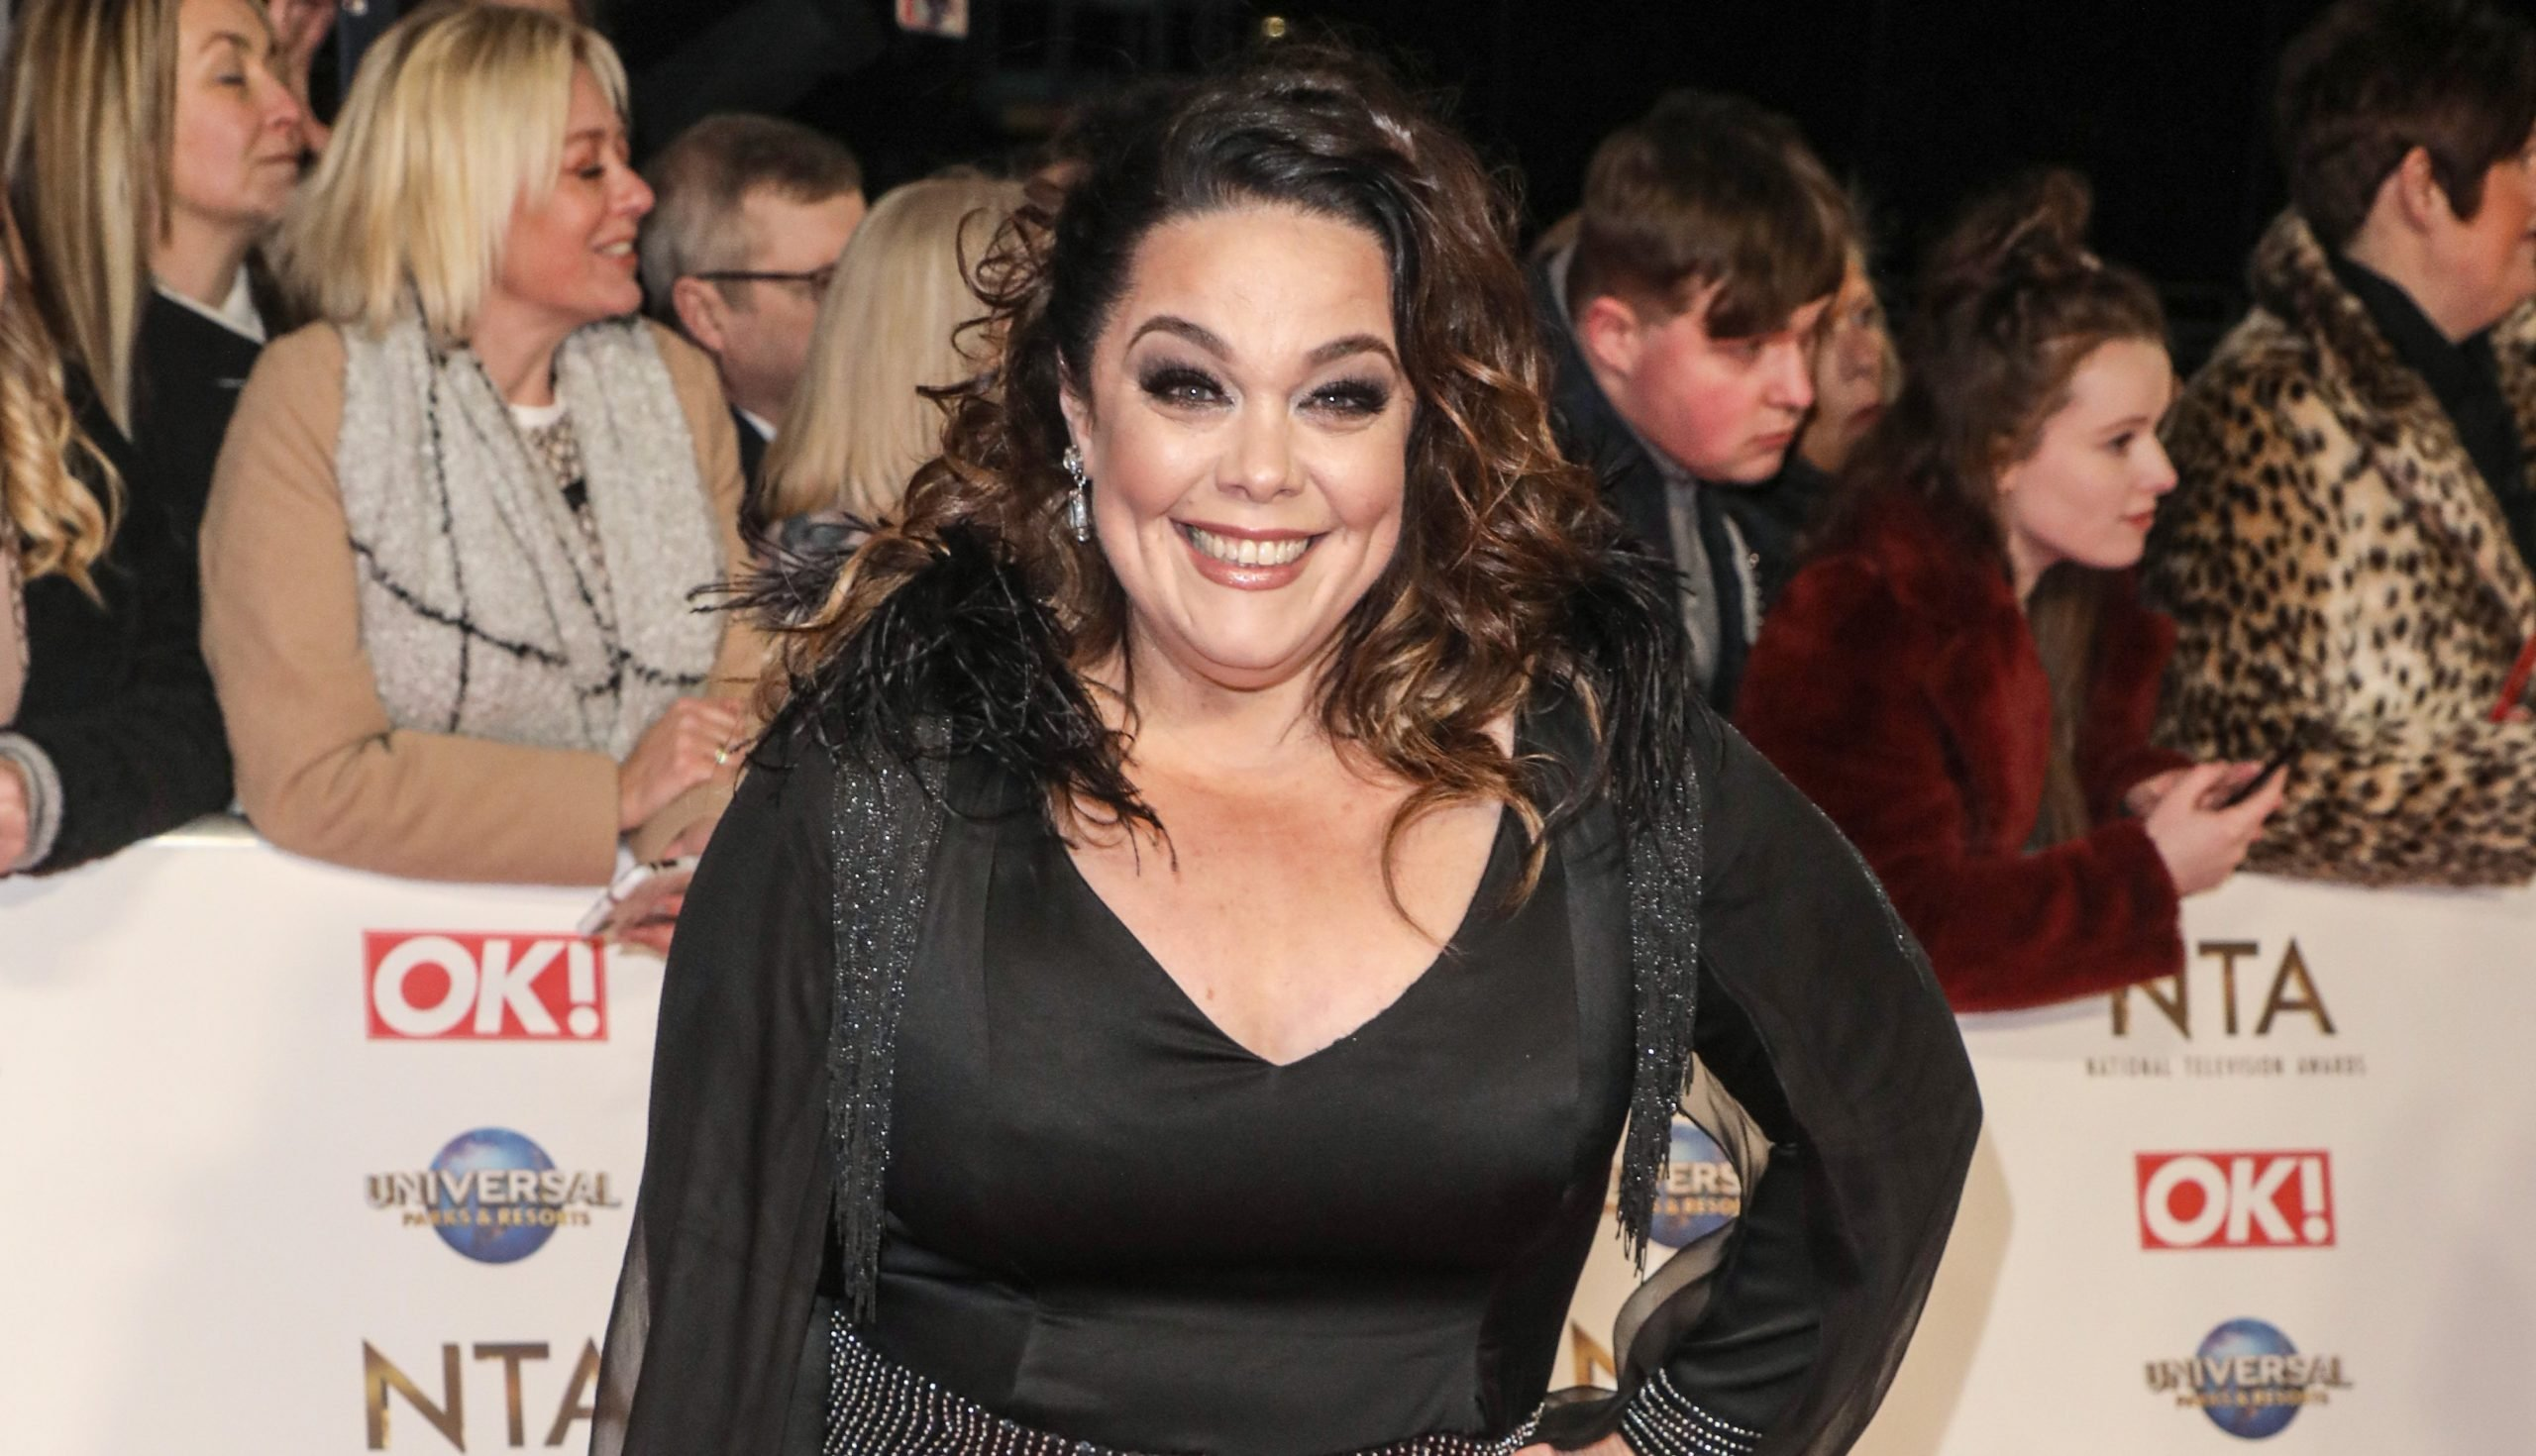 Emmerdale actress Lisa Riley tells fans to 'get a grip' over 'incest twist' theory